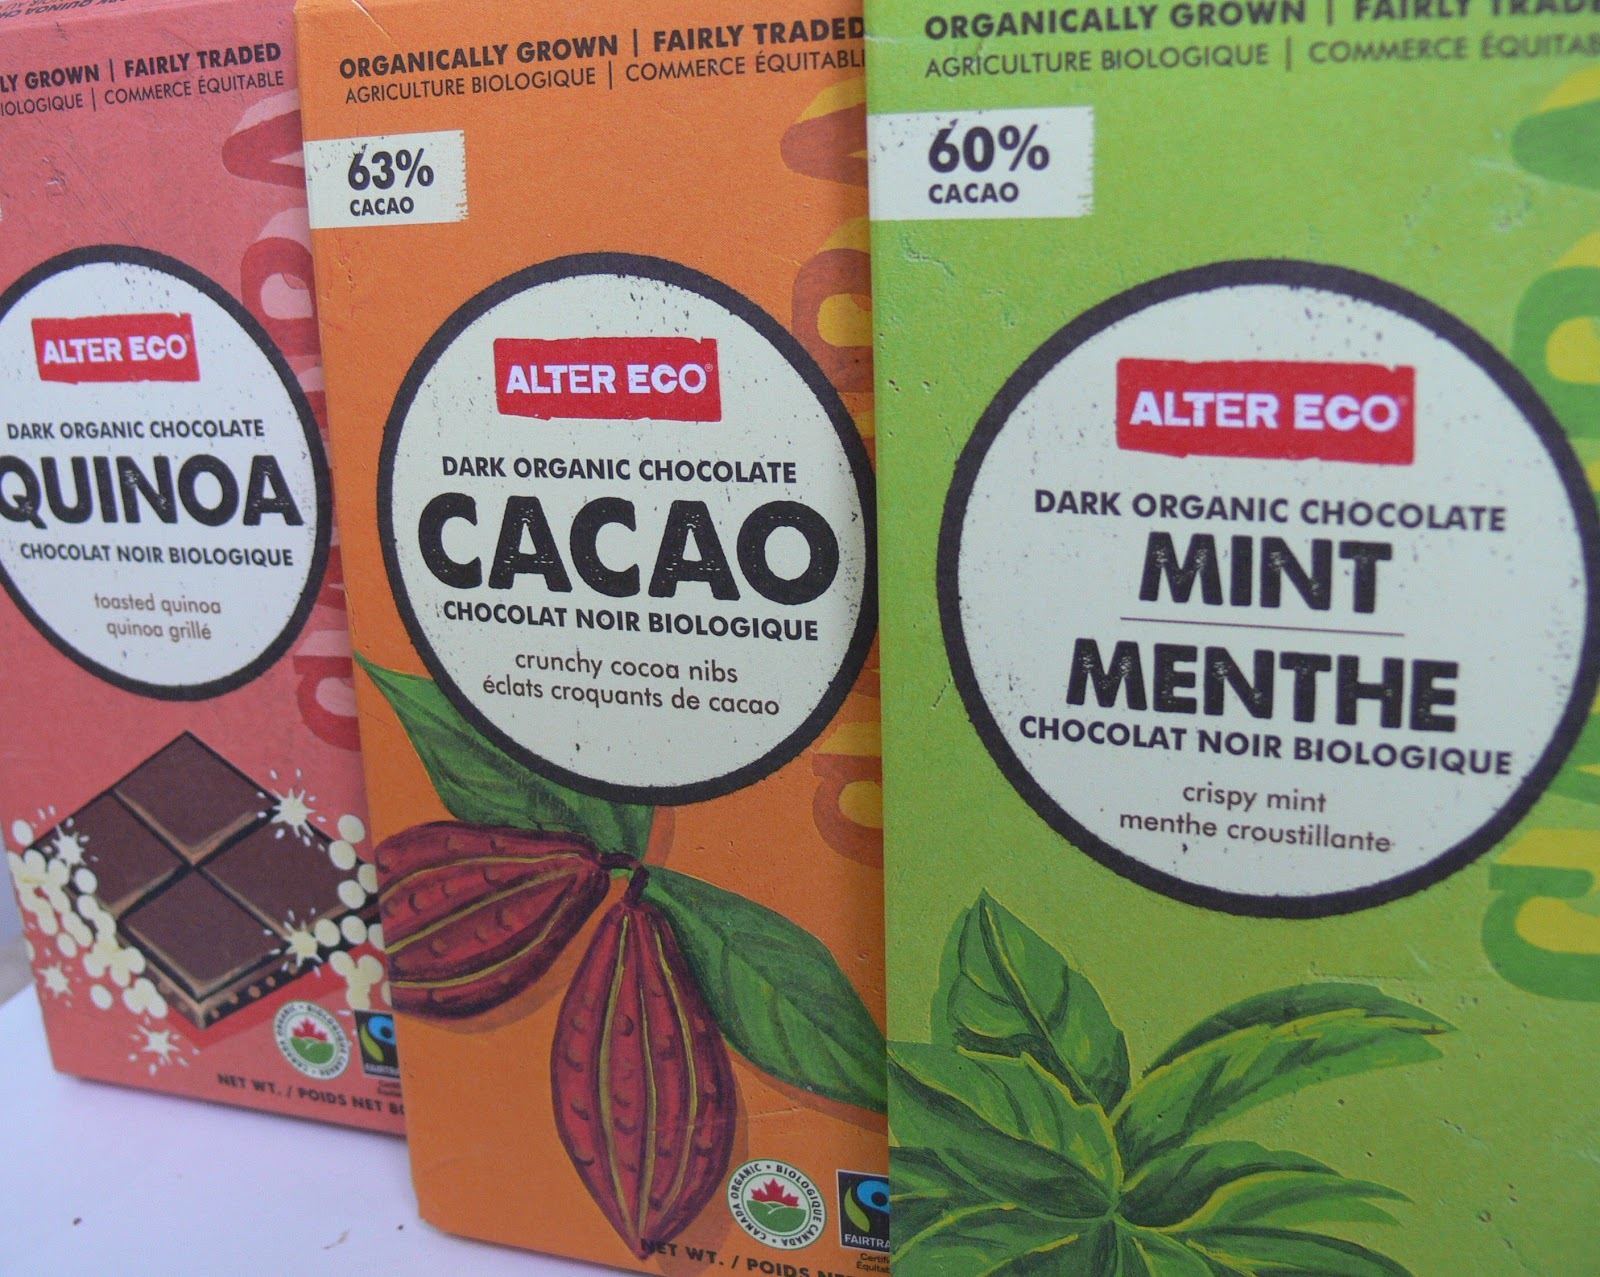 The Ultimate Chocolate Blog: Certified Organic and Fair Trade ...